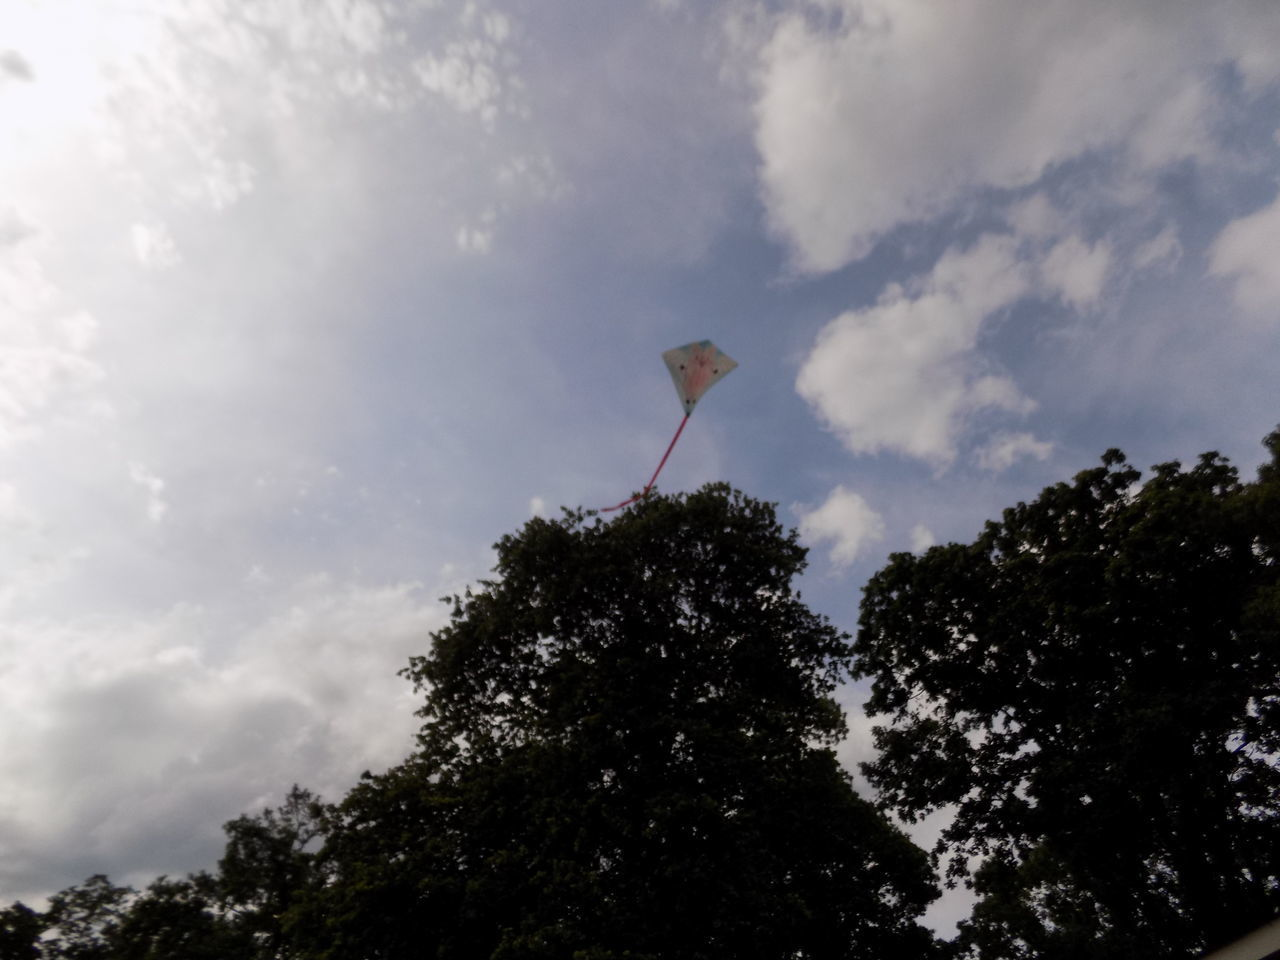 BYOPaper! Cloud - Sky Day Flag Fluffy Clouds Flying A Kite Kite Low Angle View Nature No People Outdoors Tree Trees